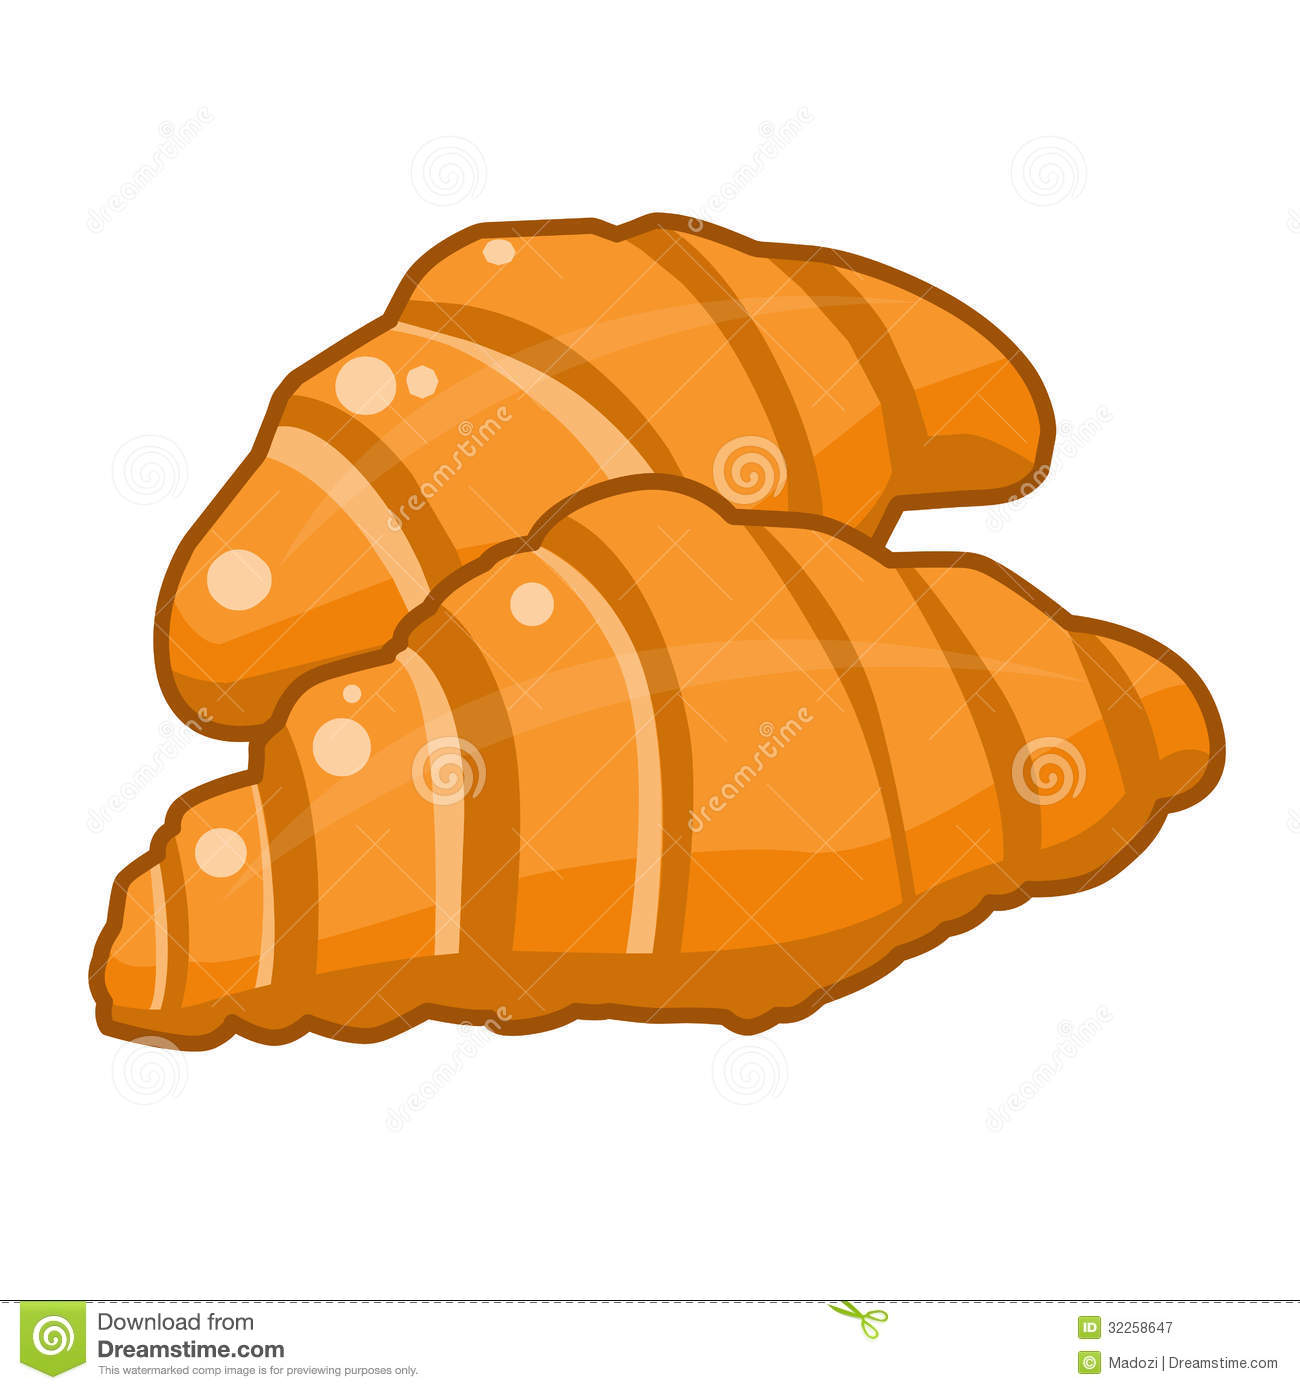 Croissant Clipart Cake Ideas And Designs